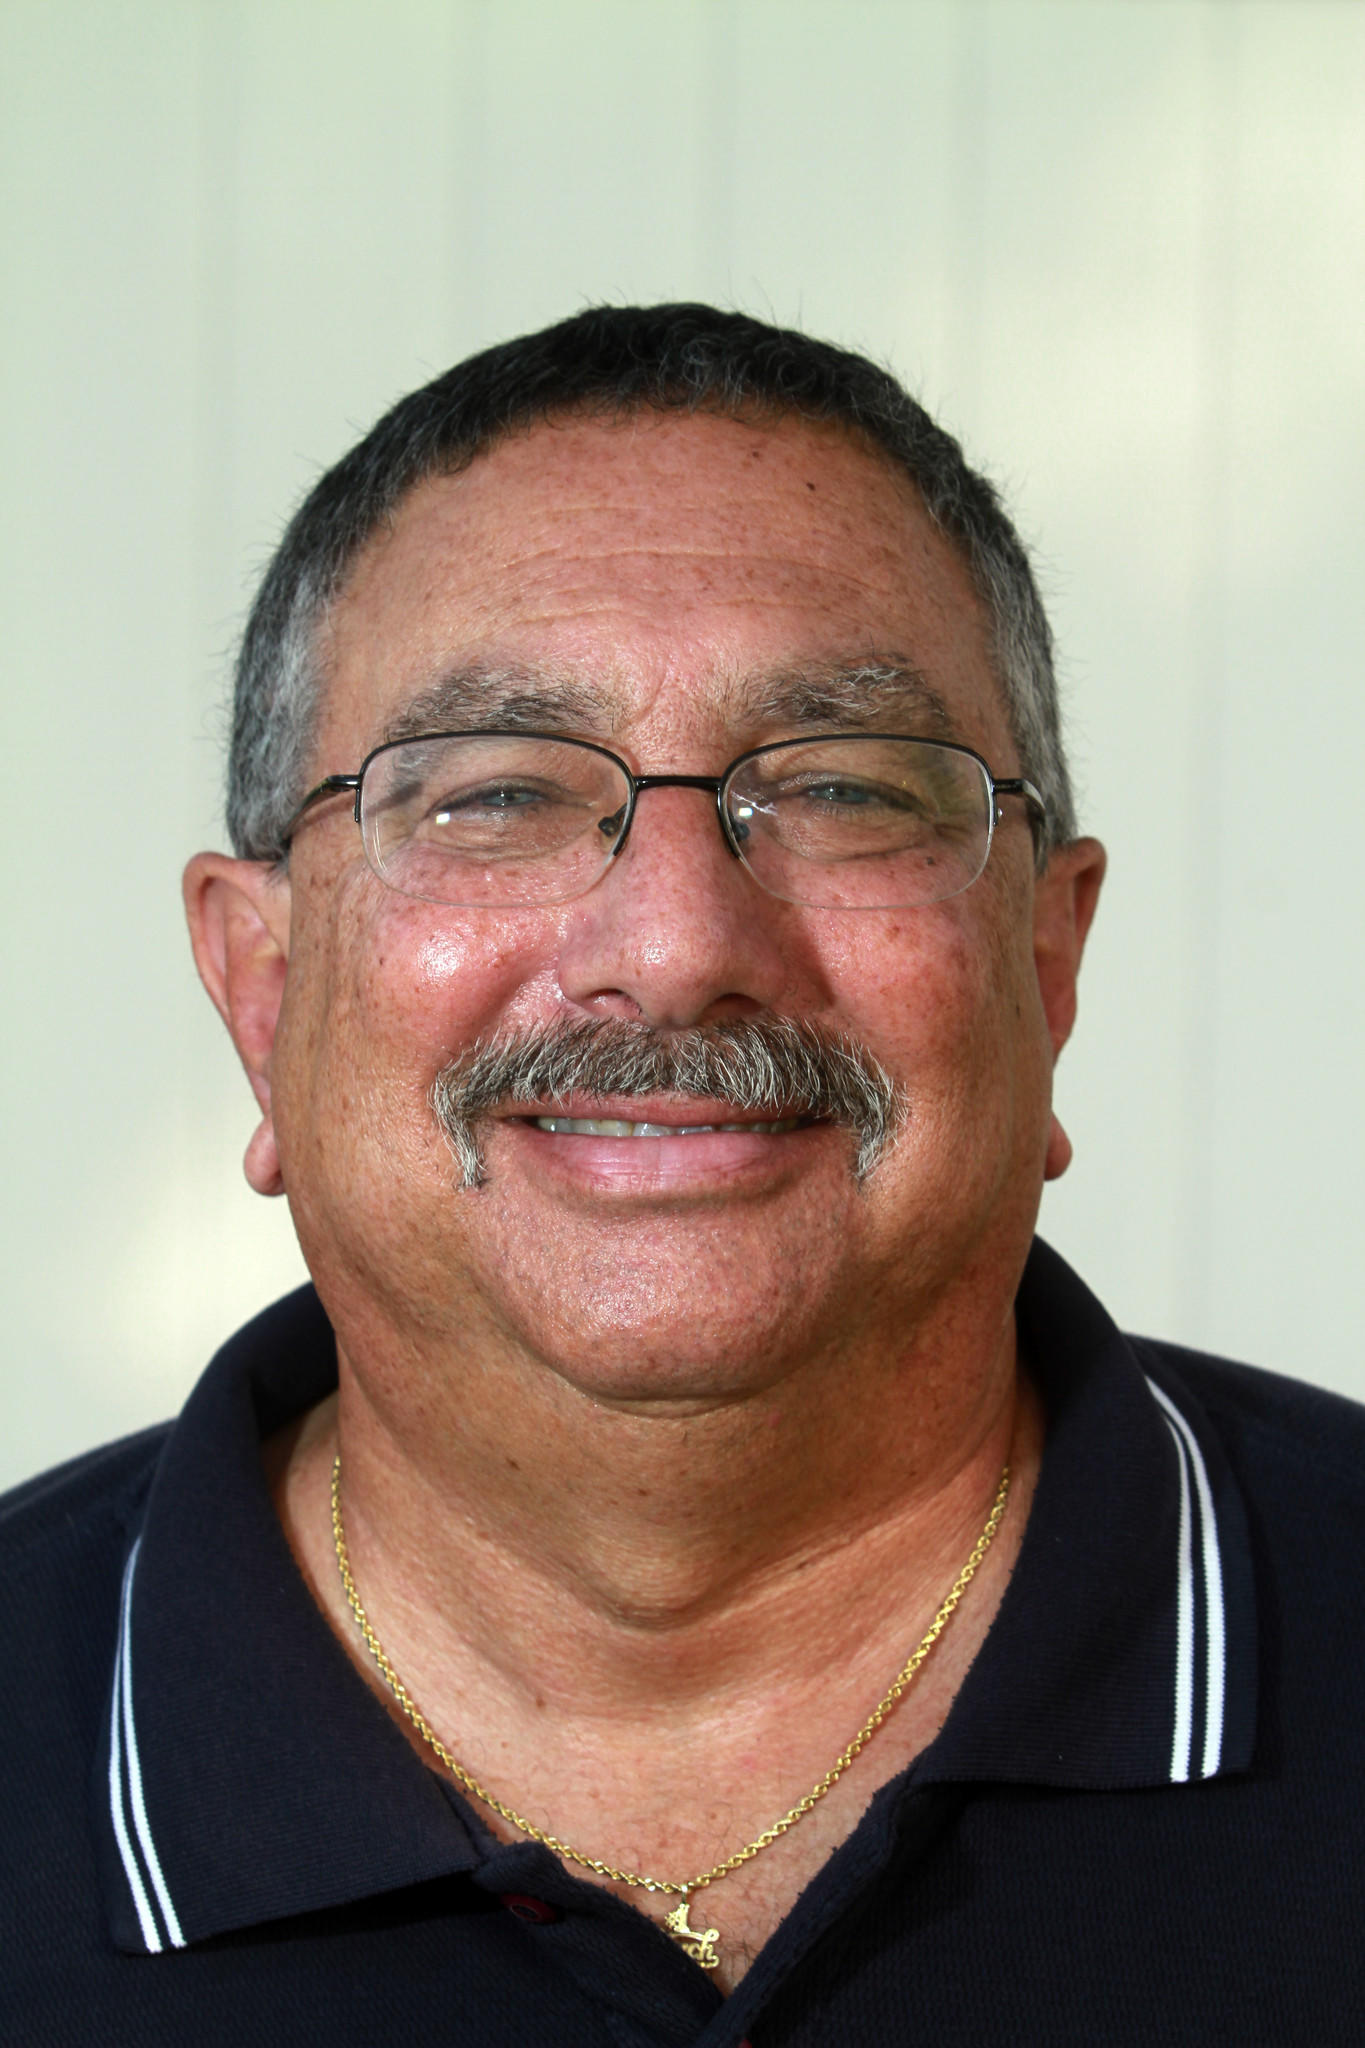 Spanish River's coach Rick Rothman steps downs as cross country coach.